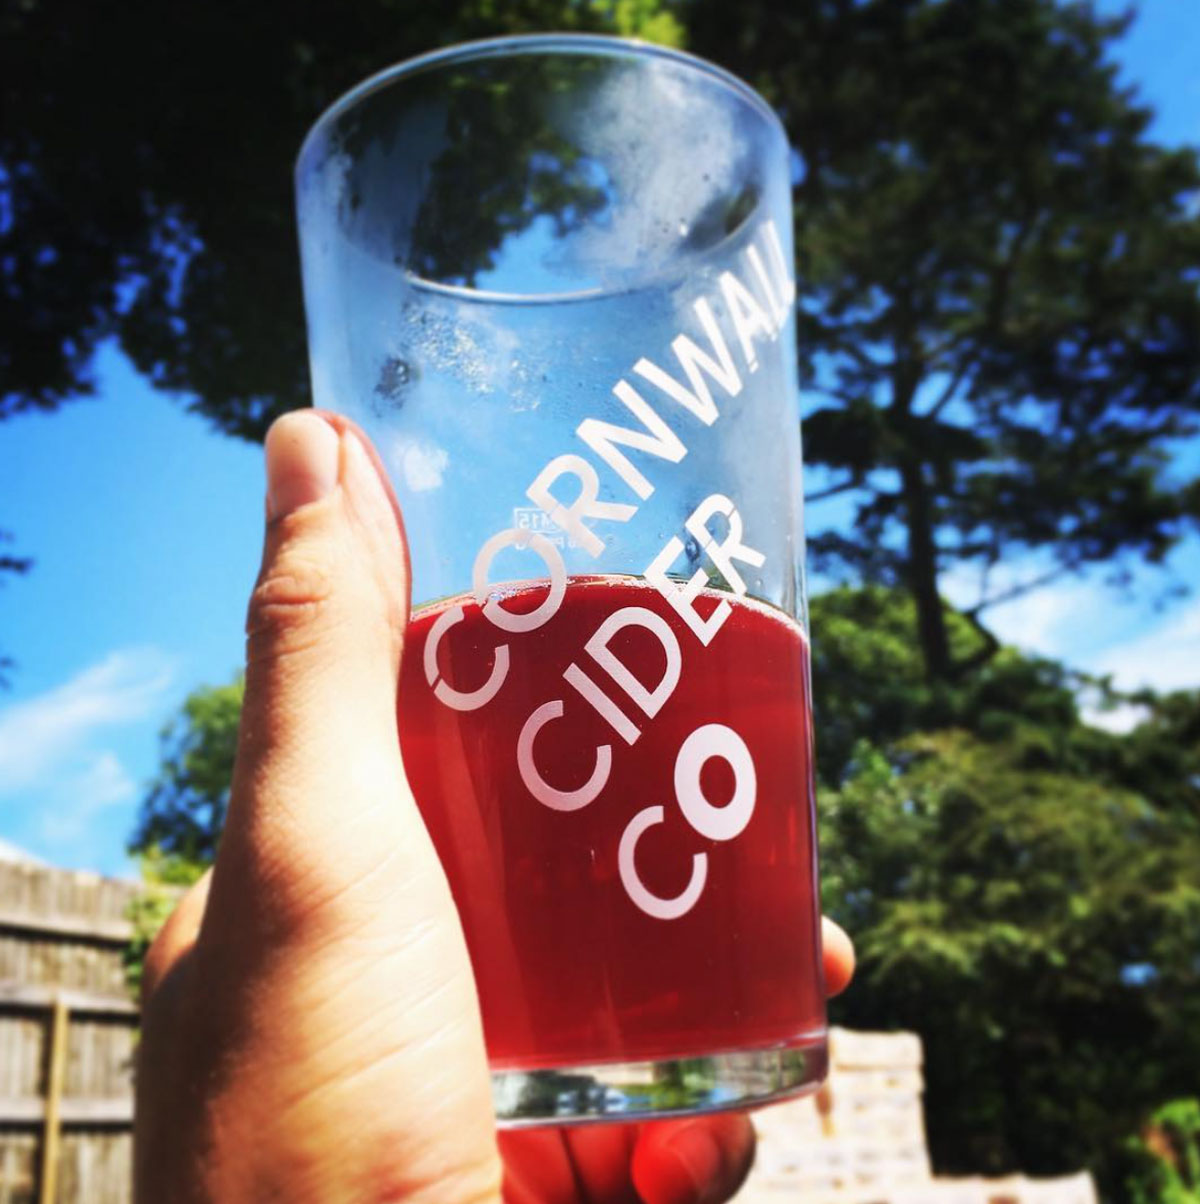 cornwall-cider-co-square-gallery-01.jpg